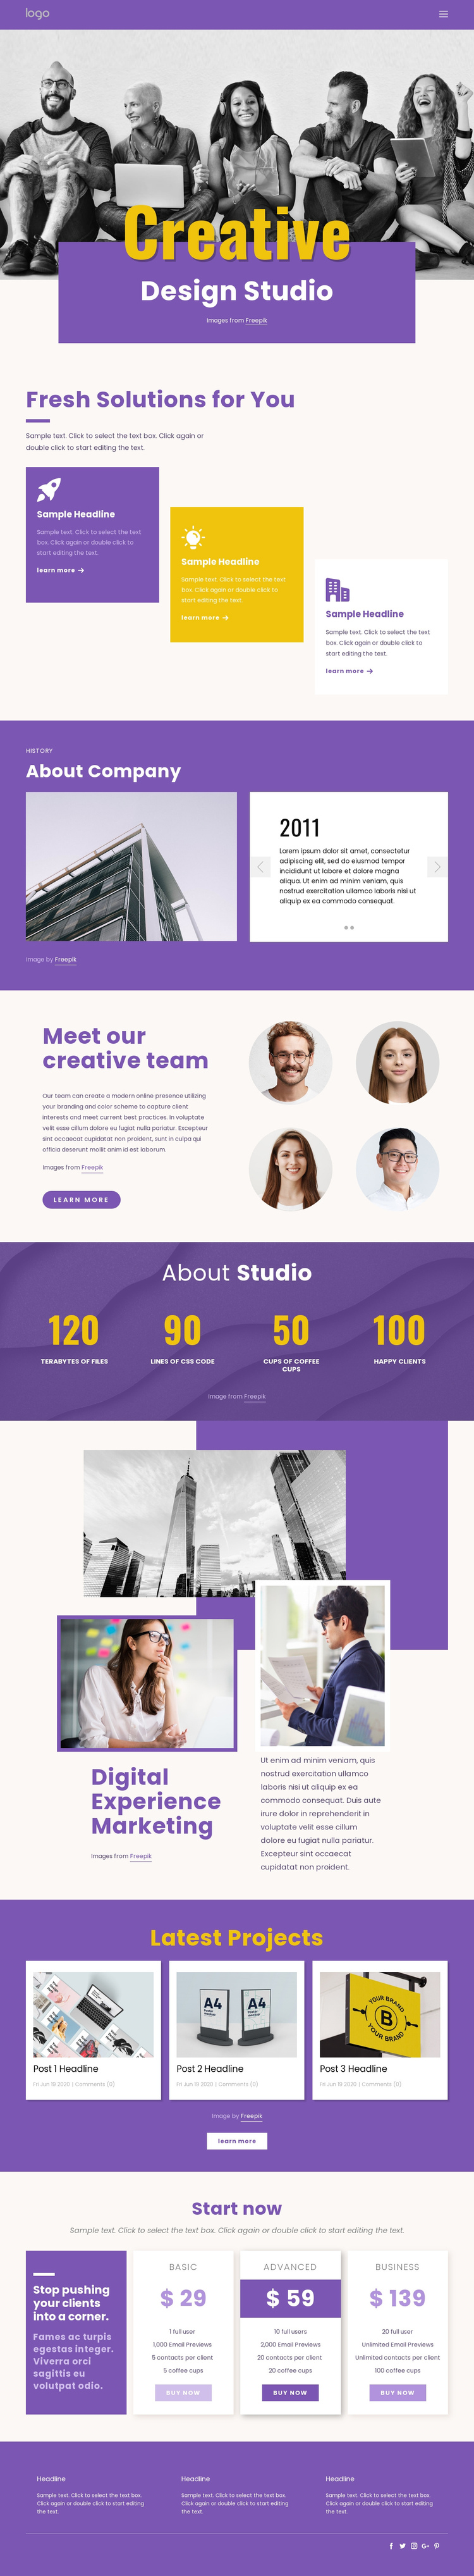 We are creative branding professionals Website Builder Software